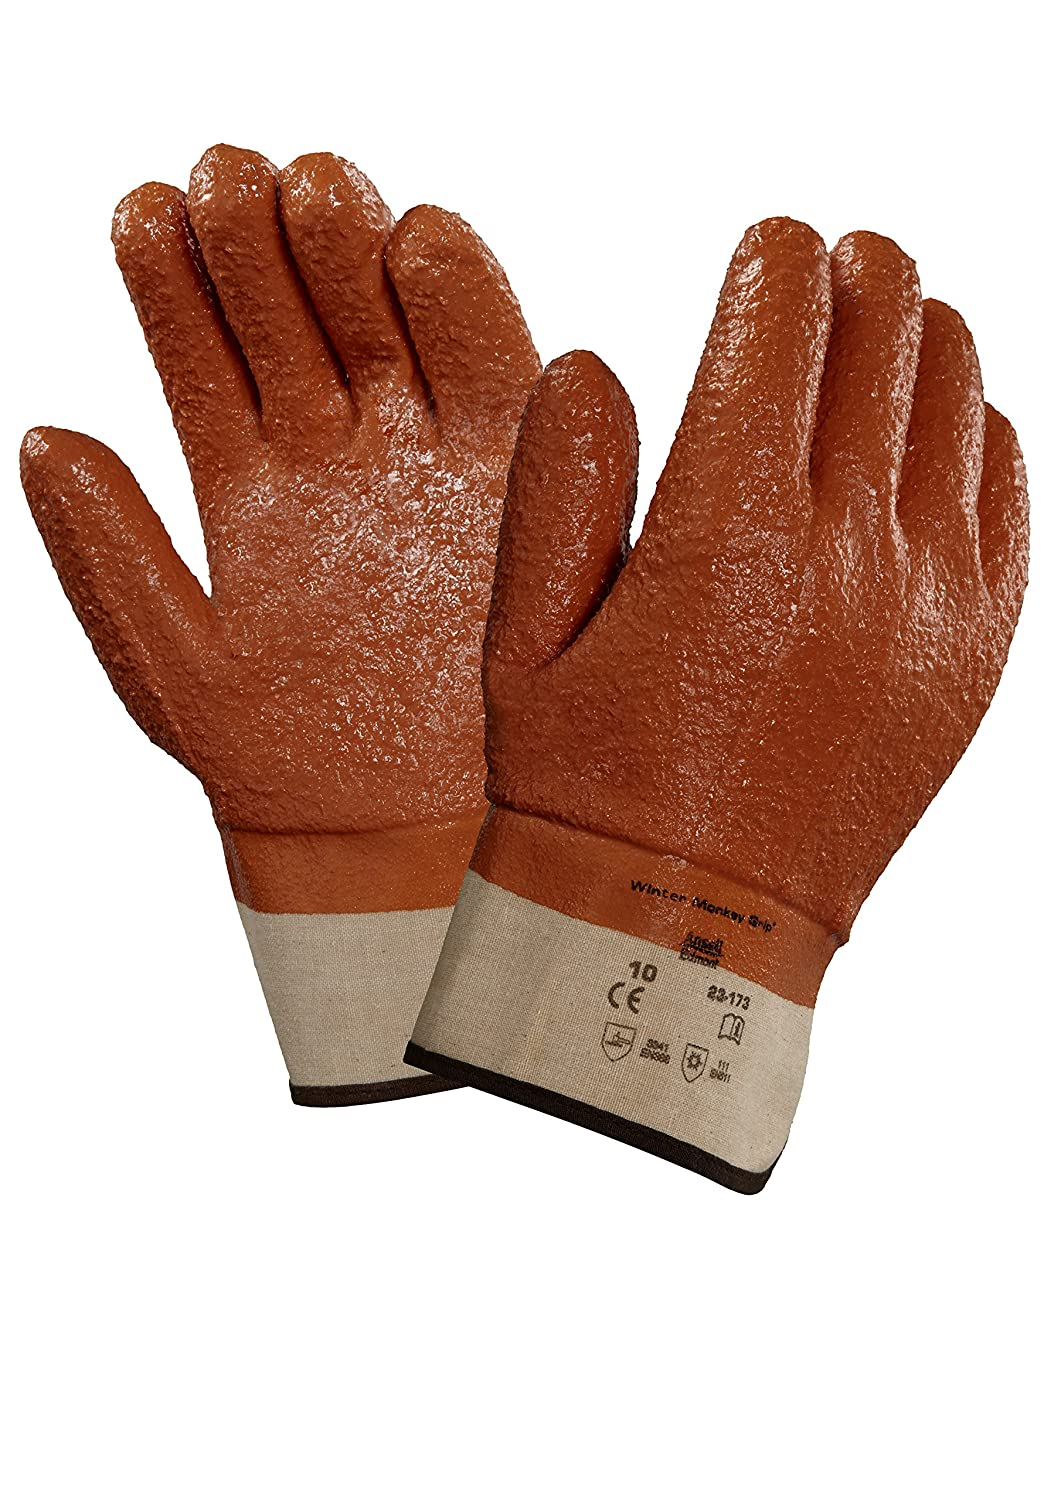 Image of Ansell 23173 Winter Monkey Grip Vinyl-Coated, Foam-Insulated Gloves, 11' Length, 5.5' Width, 0.92' Height, Size 10, Orange (Pack of 12)